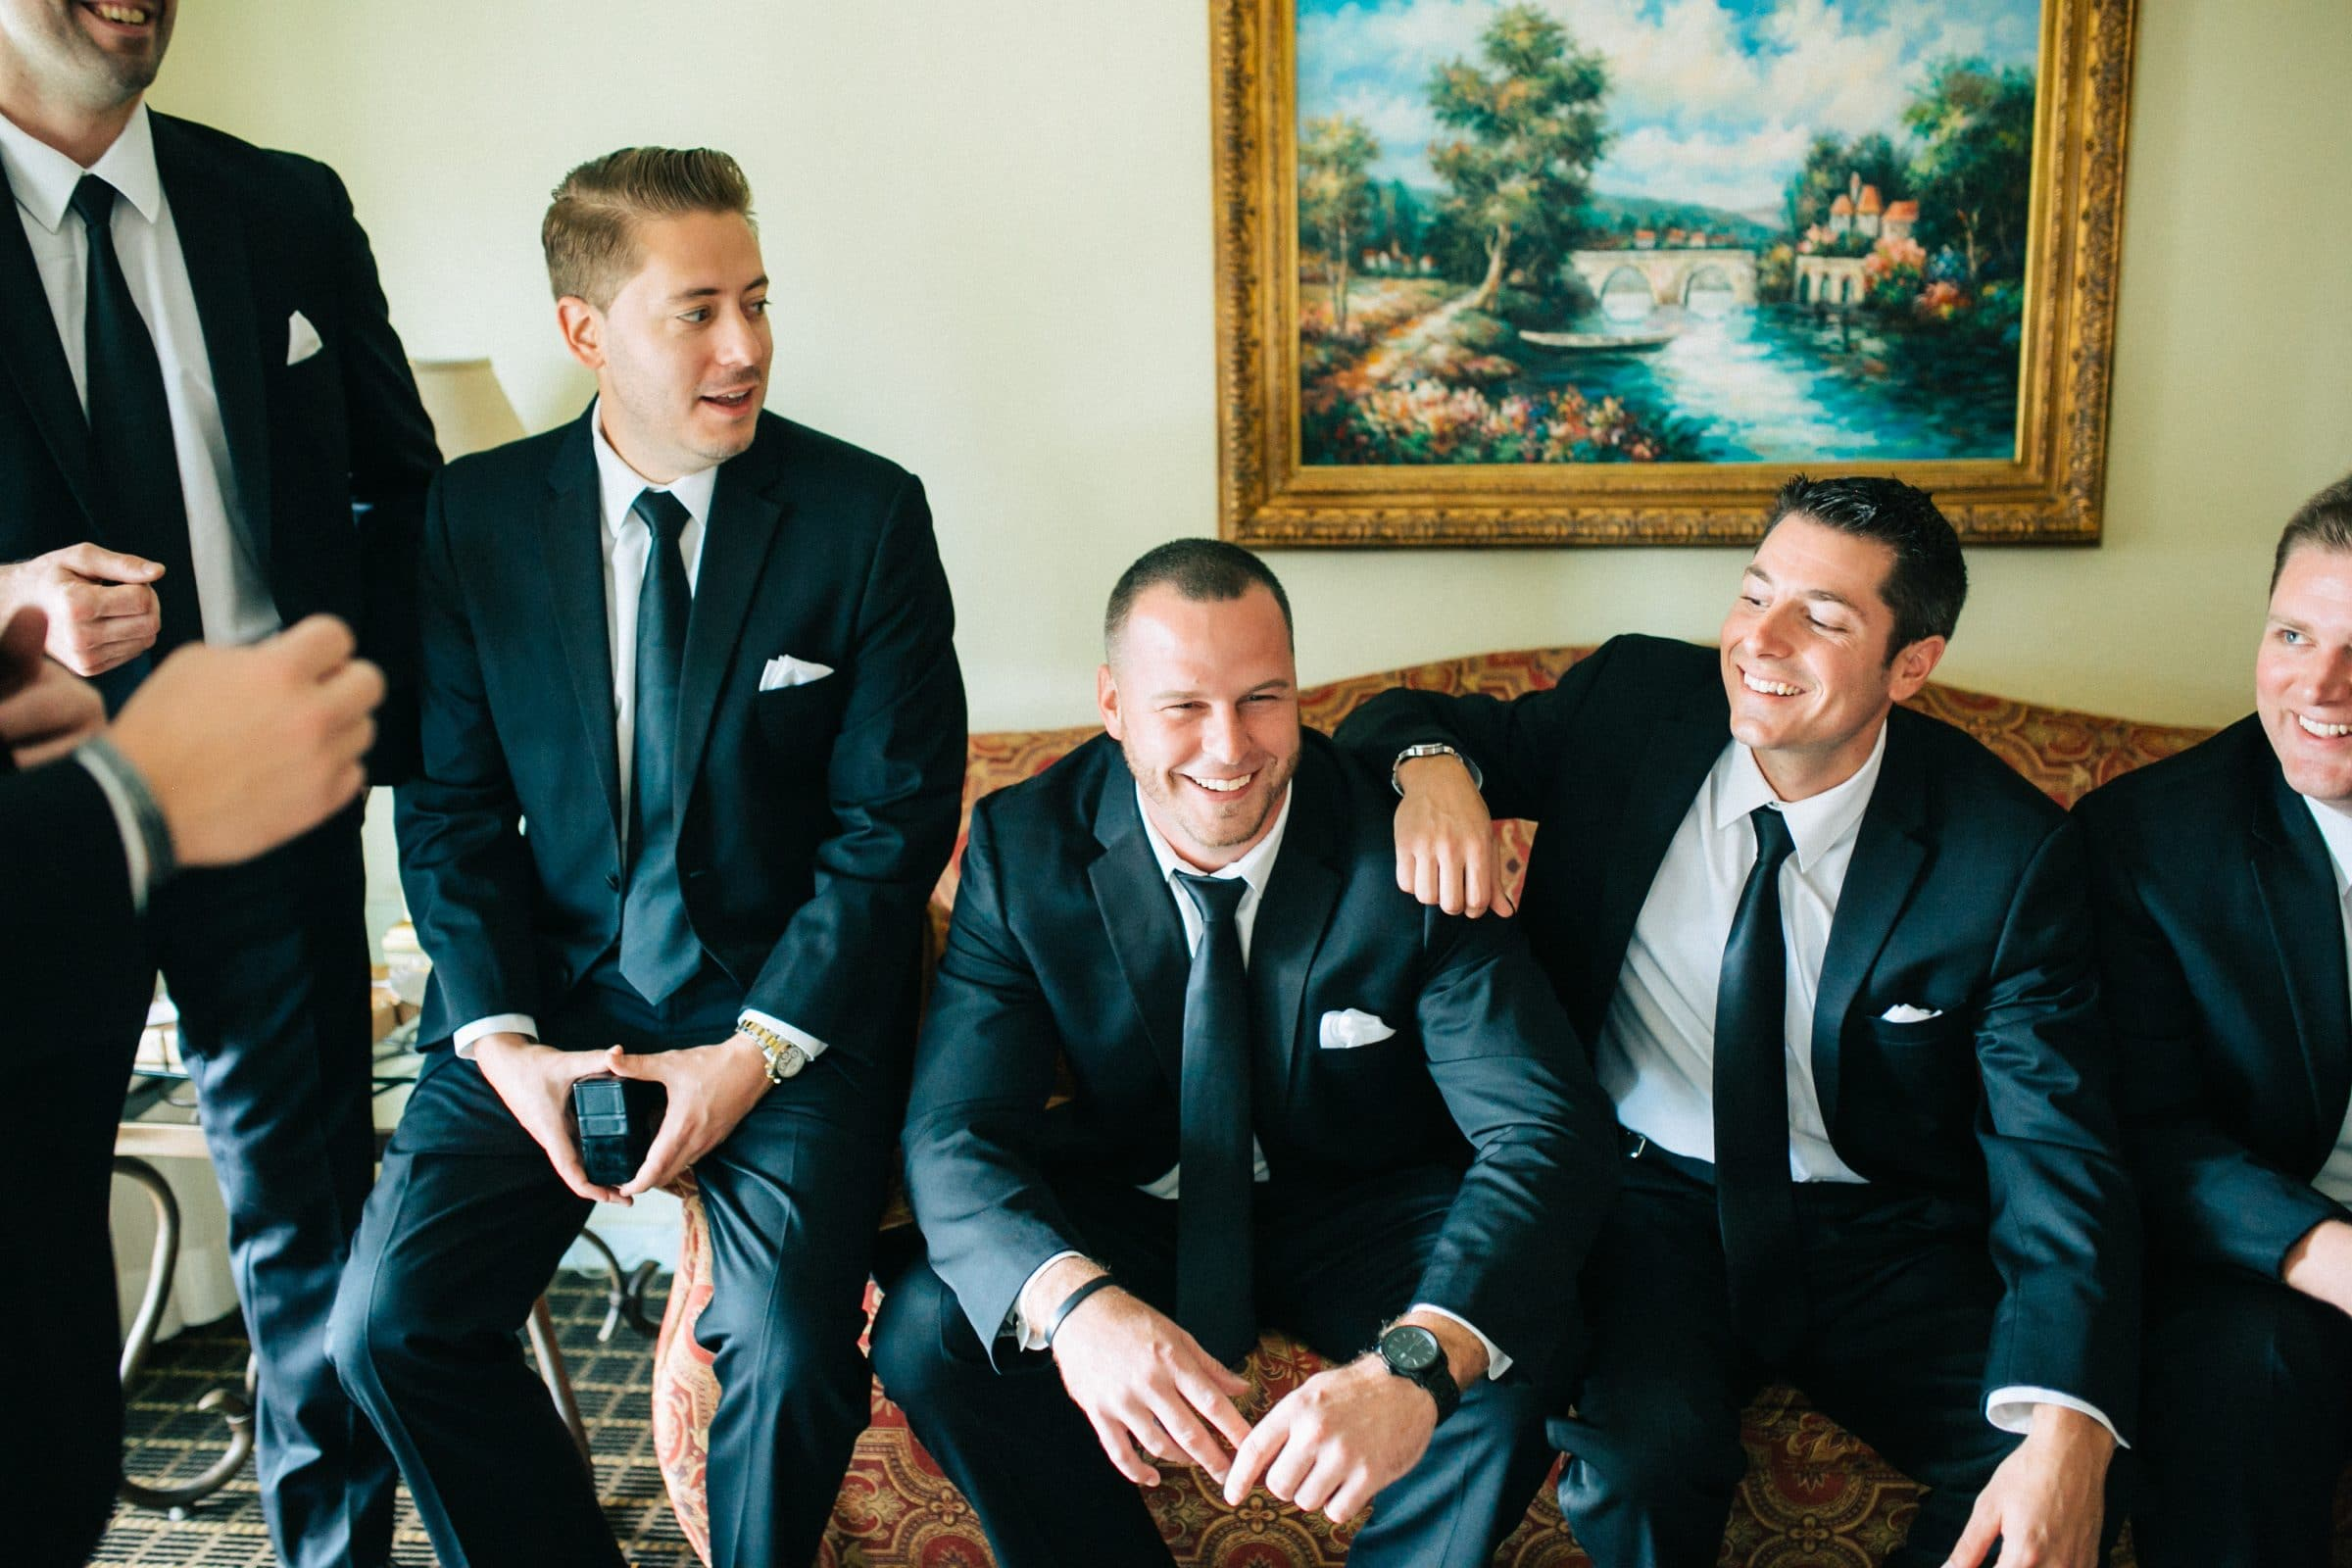 Groom and groomsmen chatting on couch